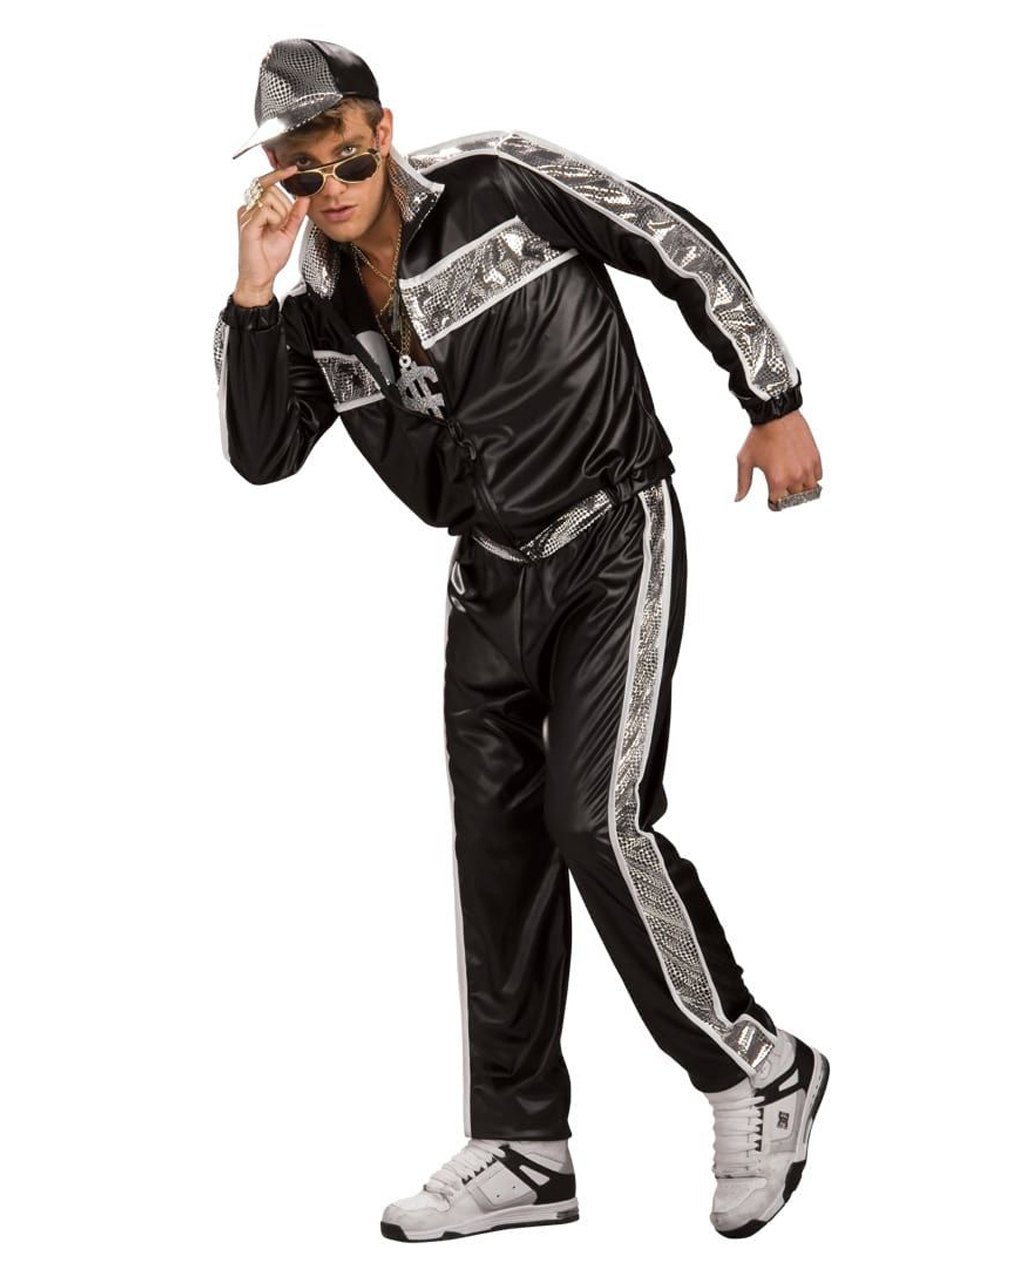 Cool Rapper Costume Rapper Outfit Proll Costume Pop Star Hip Hop Horror Shop Com